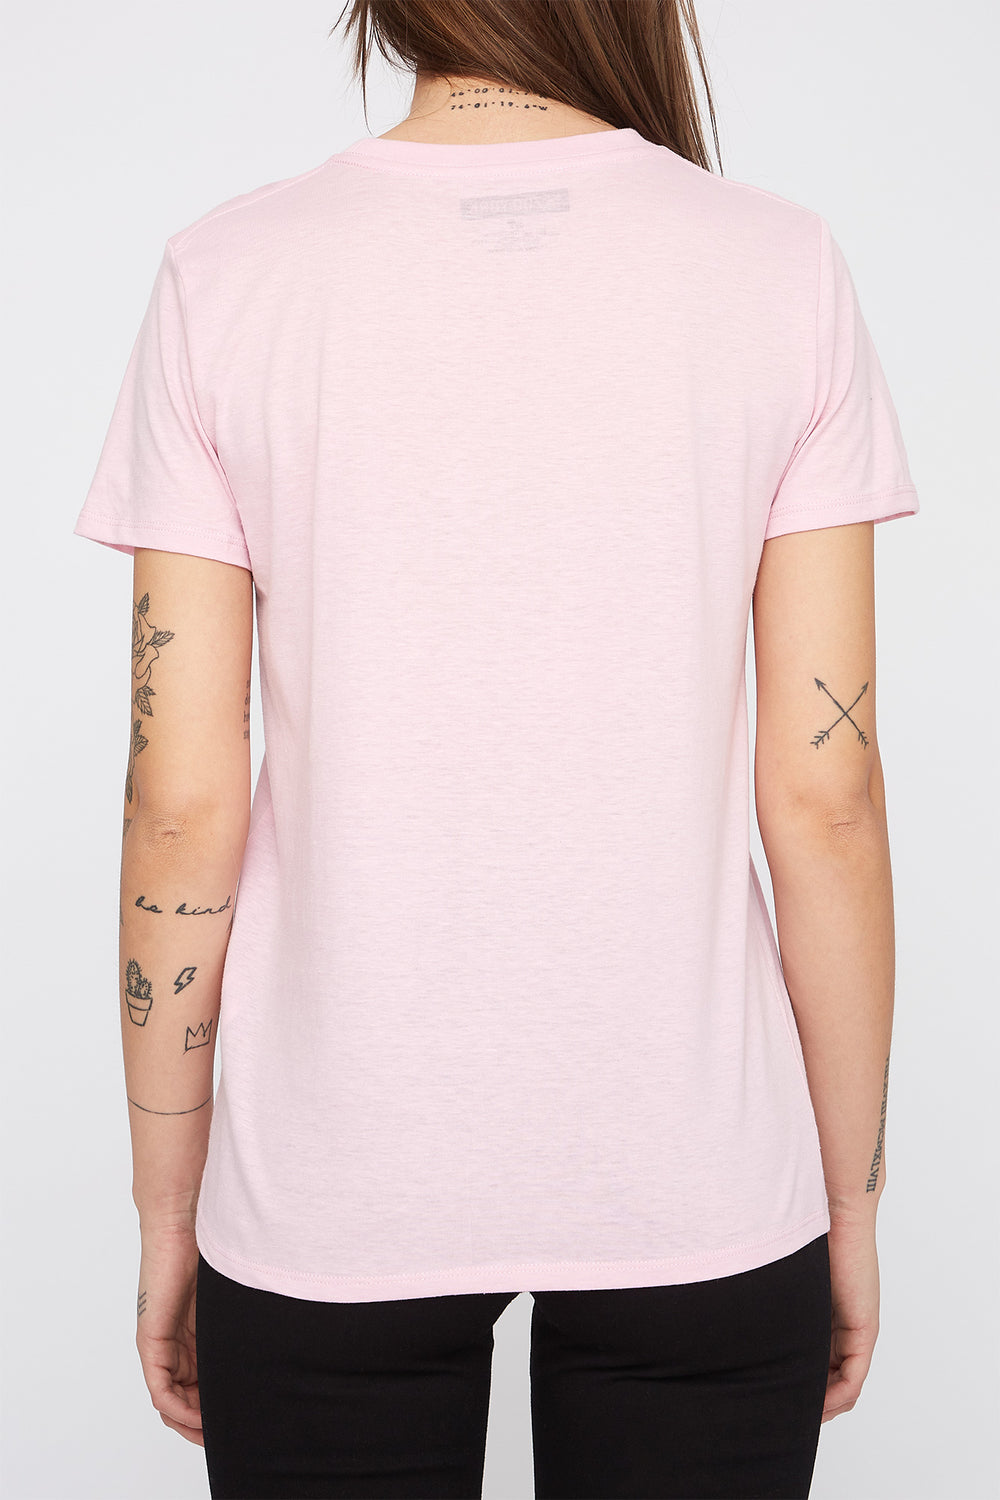 T-Shirt Couleur Pastel Zoo York Femme Rose pale